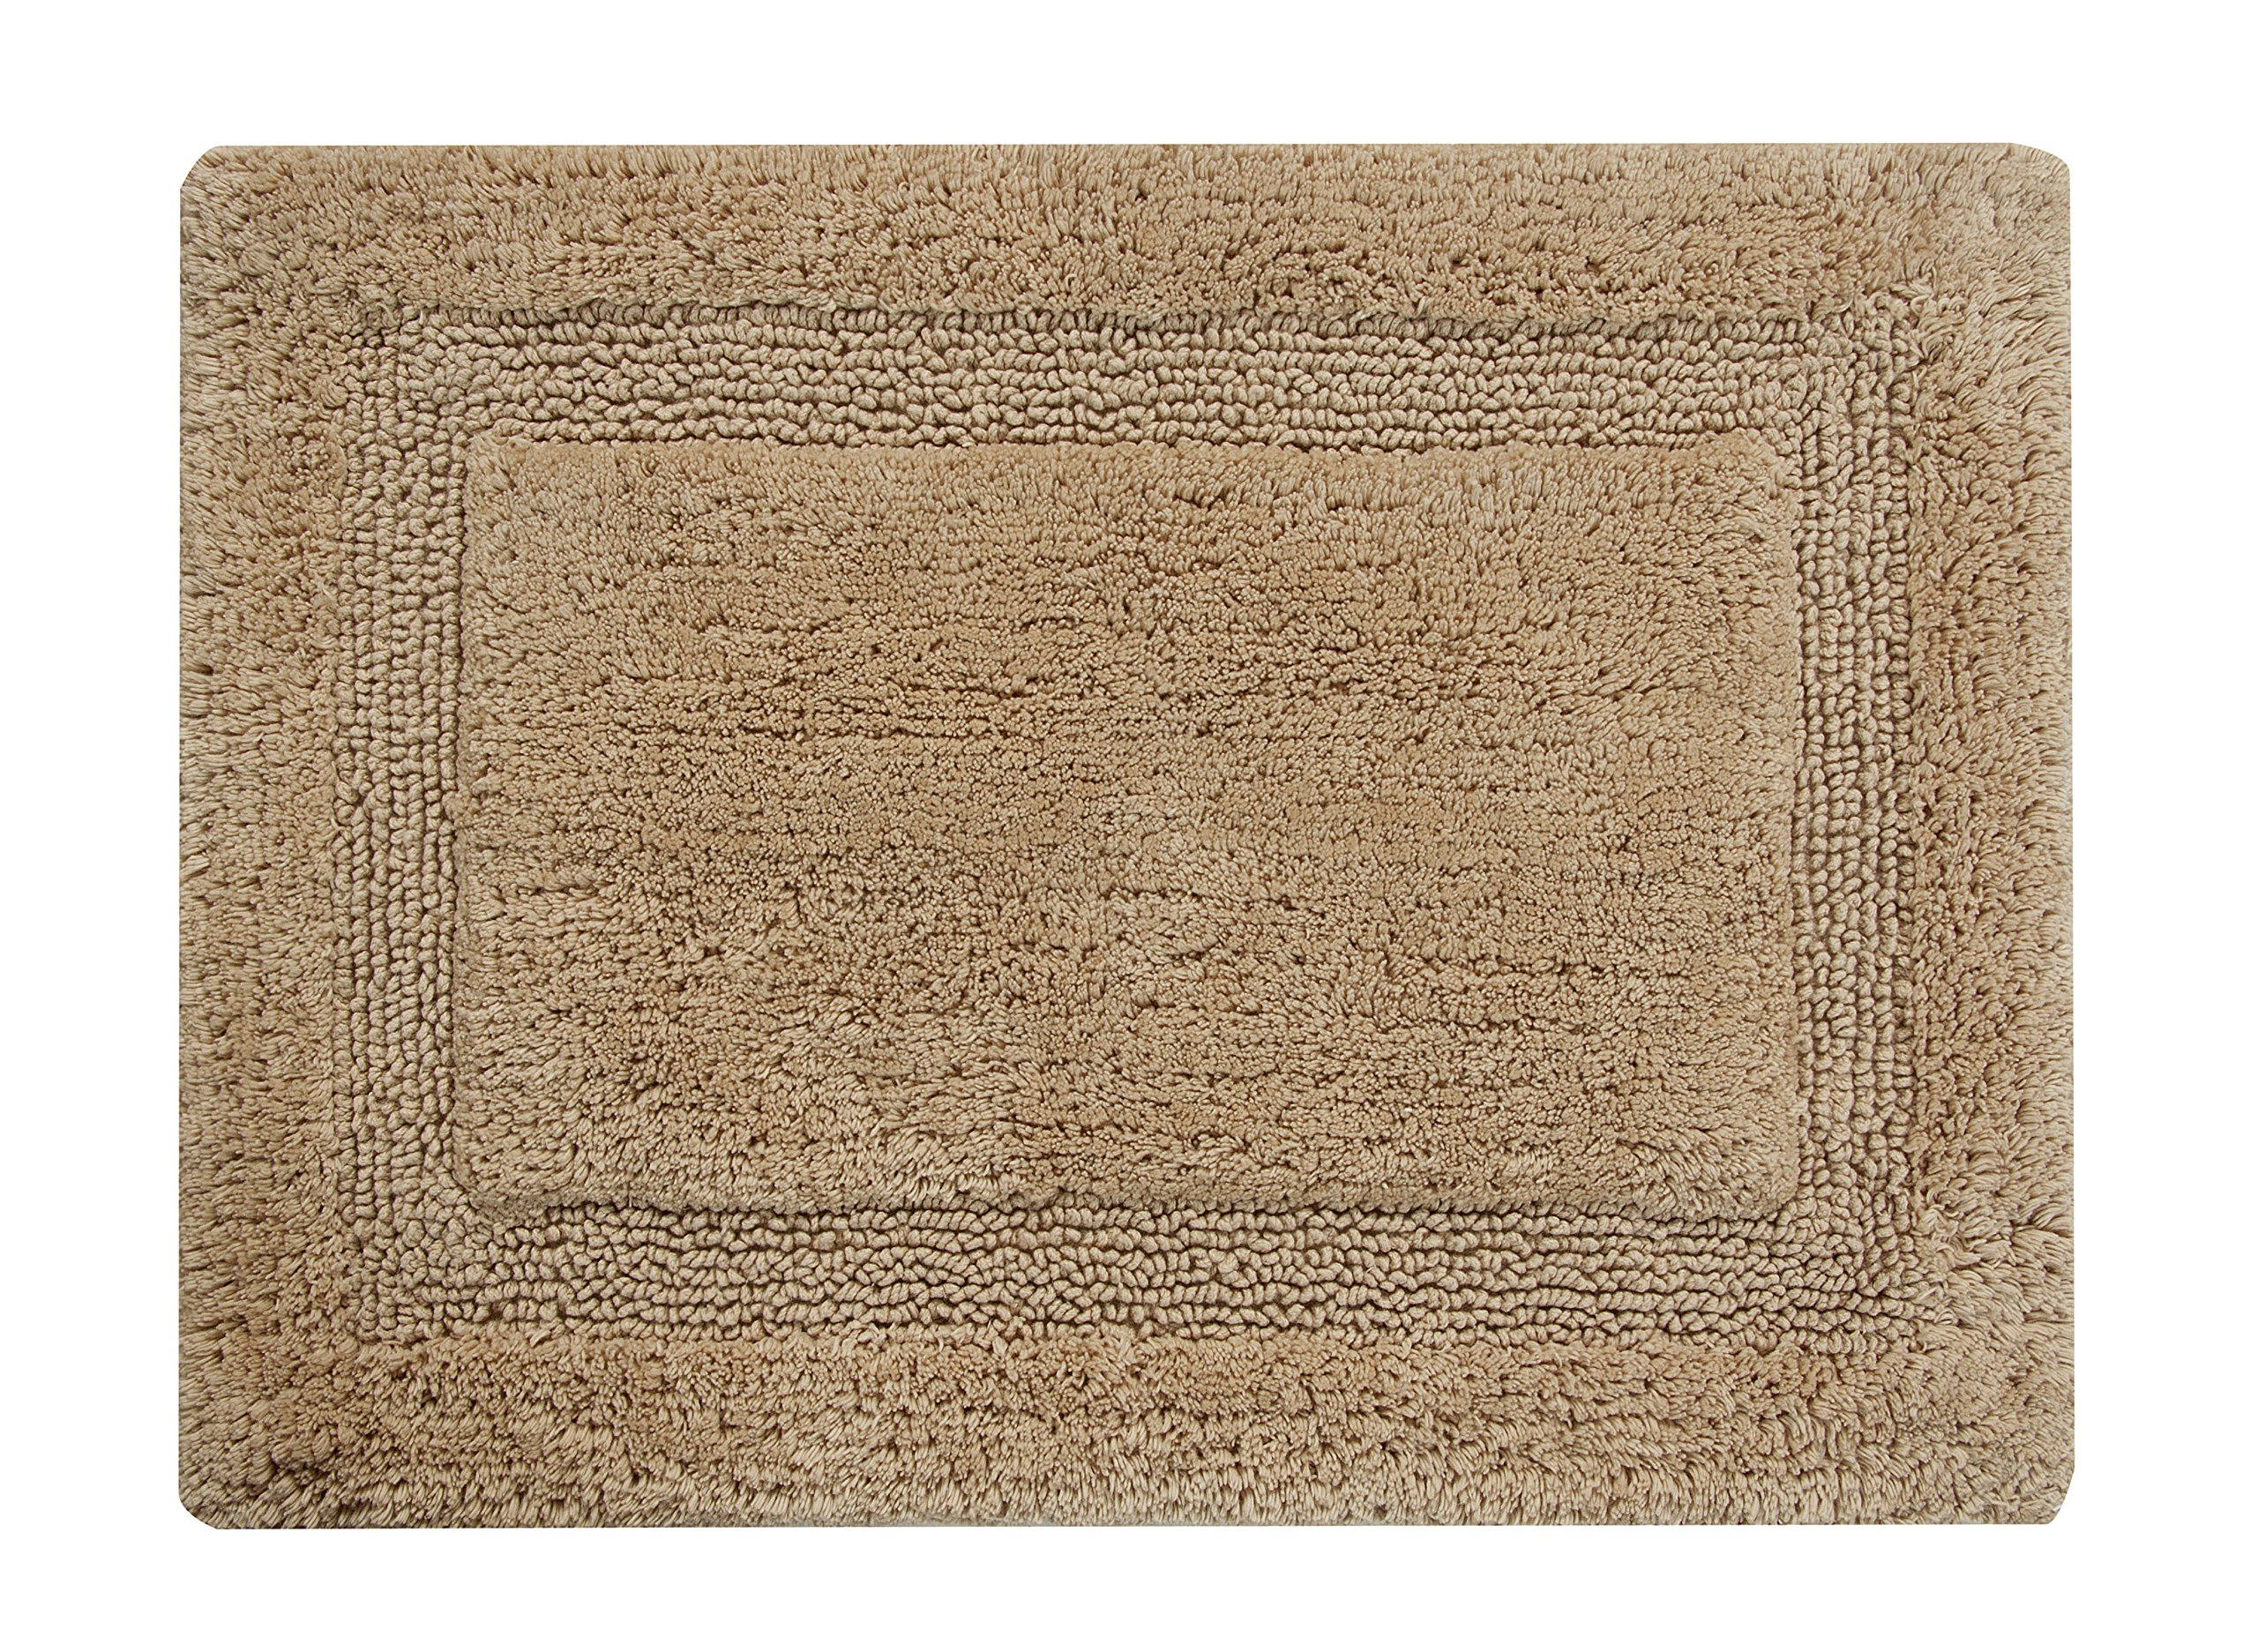 Saffron Fabs Bath Rug 100% Soft Cotton, Size 50x30 Inch, Latex Spray Non-Skid Backing, Solid Beige Color, Textured Border, Hand Tufted, Heavy 190 GSF Weight, Machine Washable